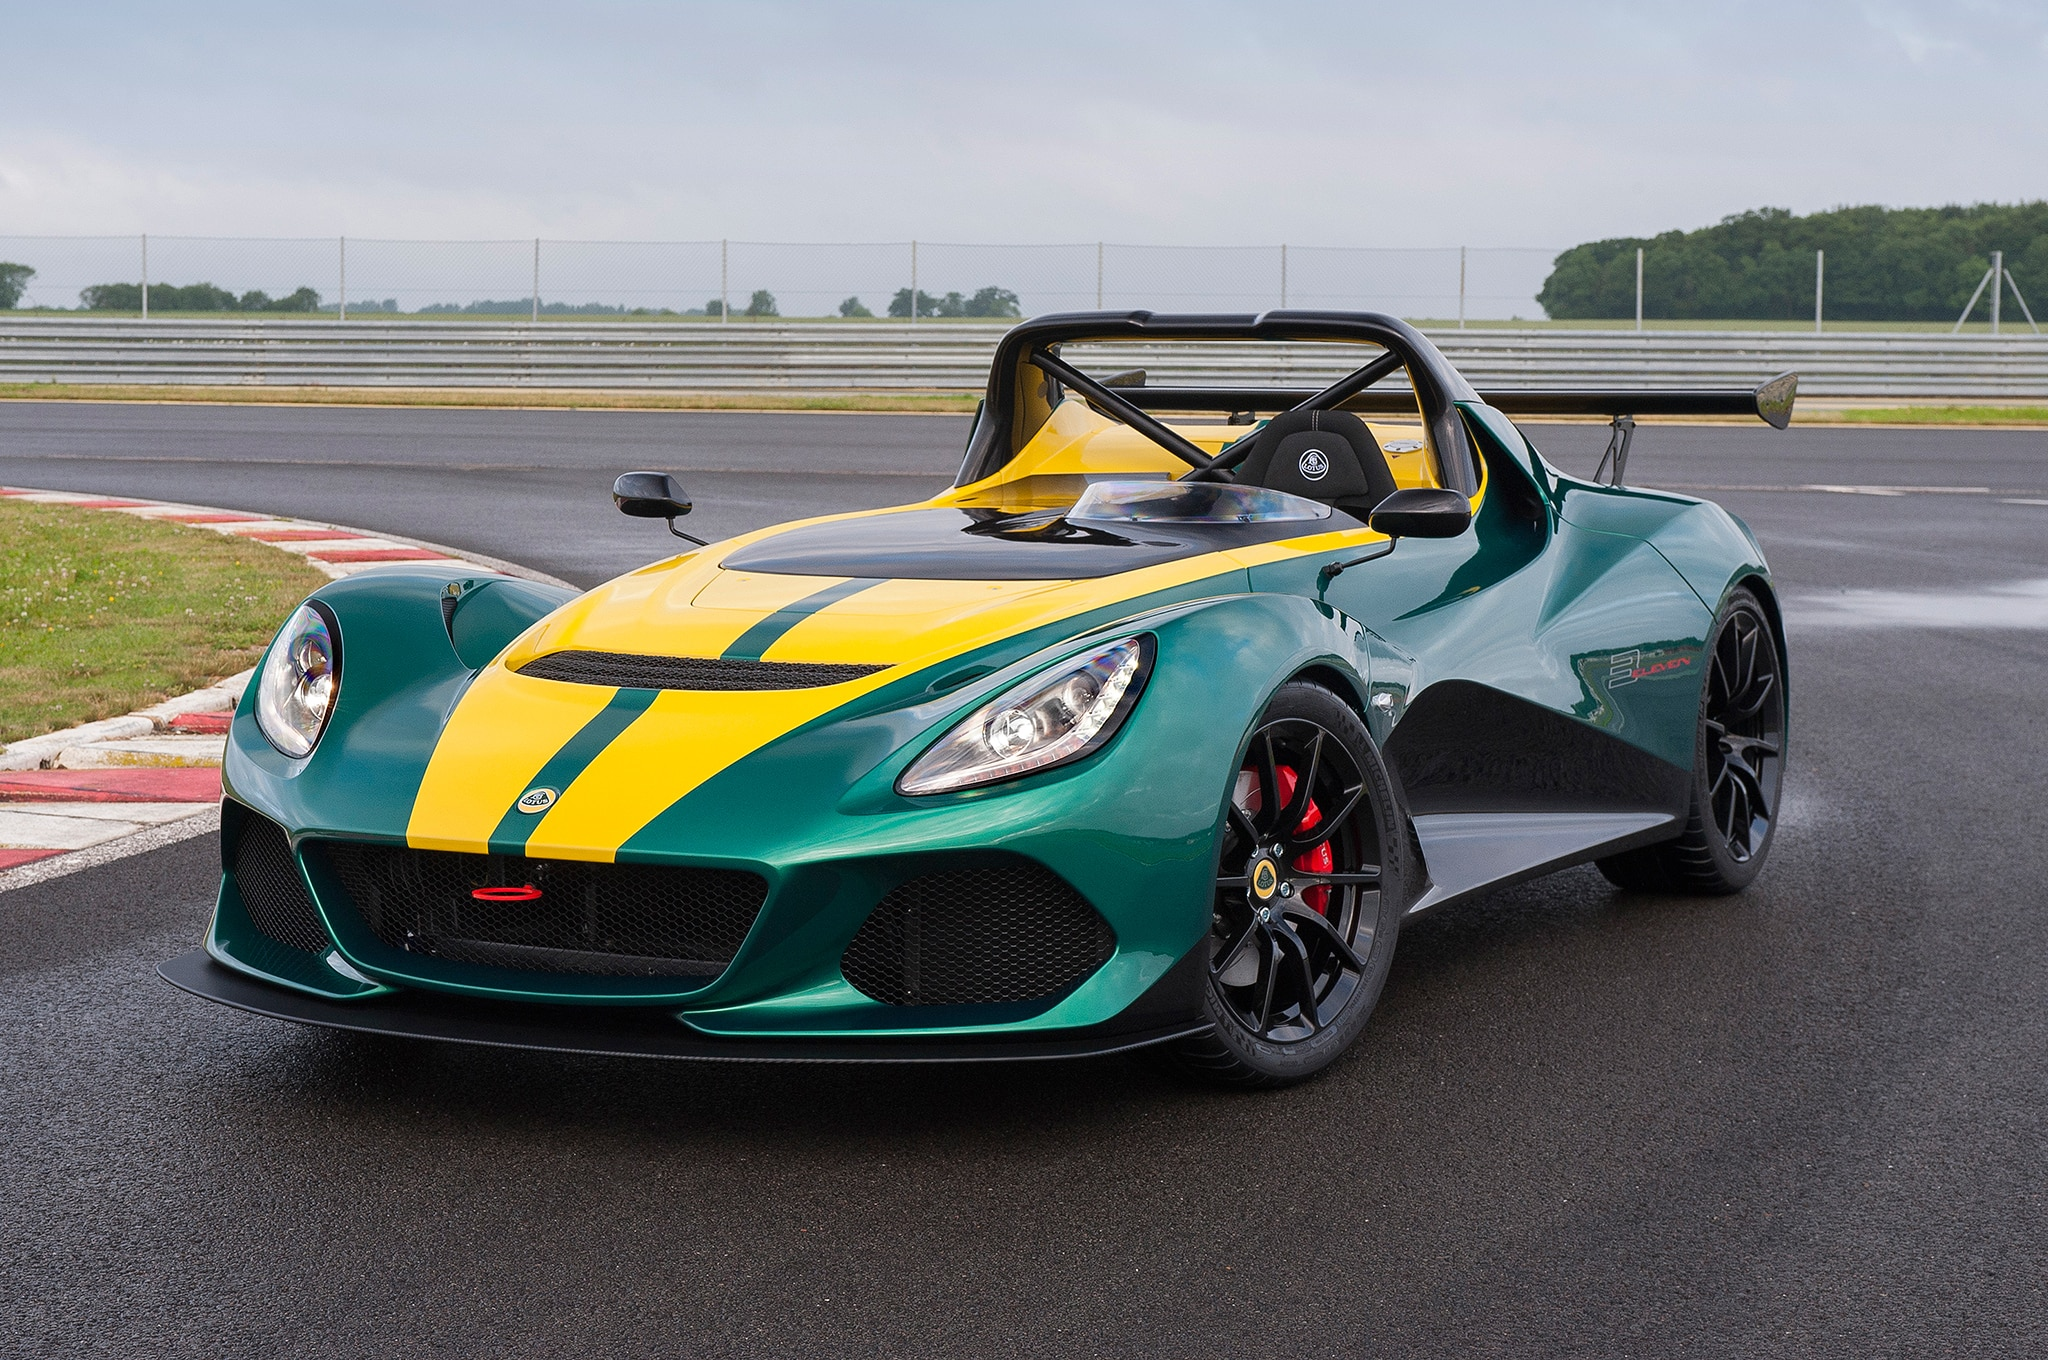 Lotus 3 Eleven Packs 450 Hp Weighs As Little As 1 984 Lb